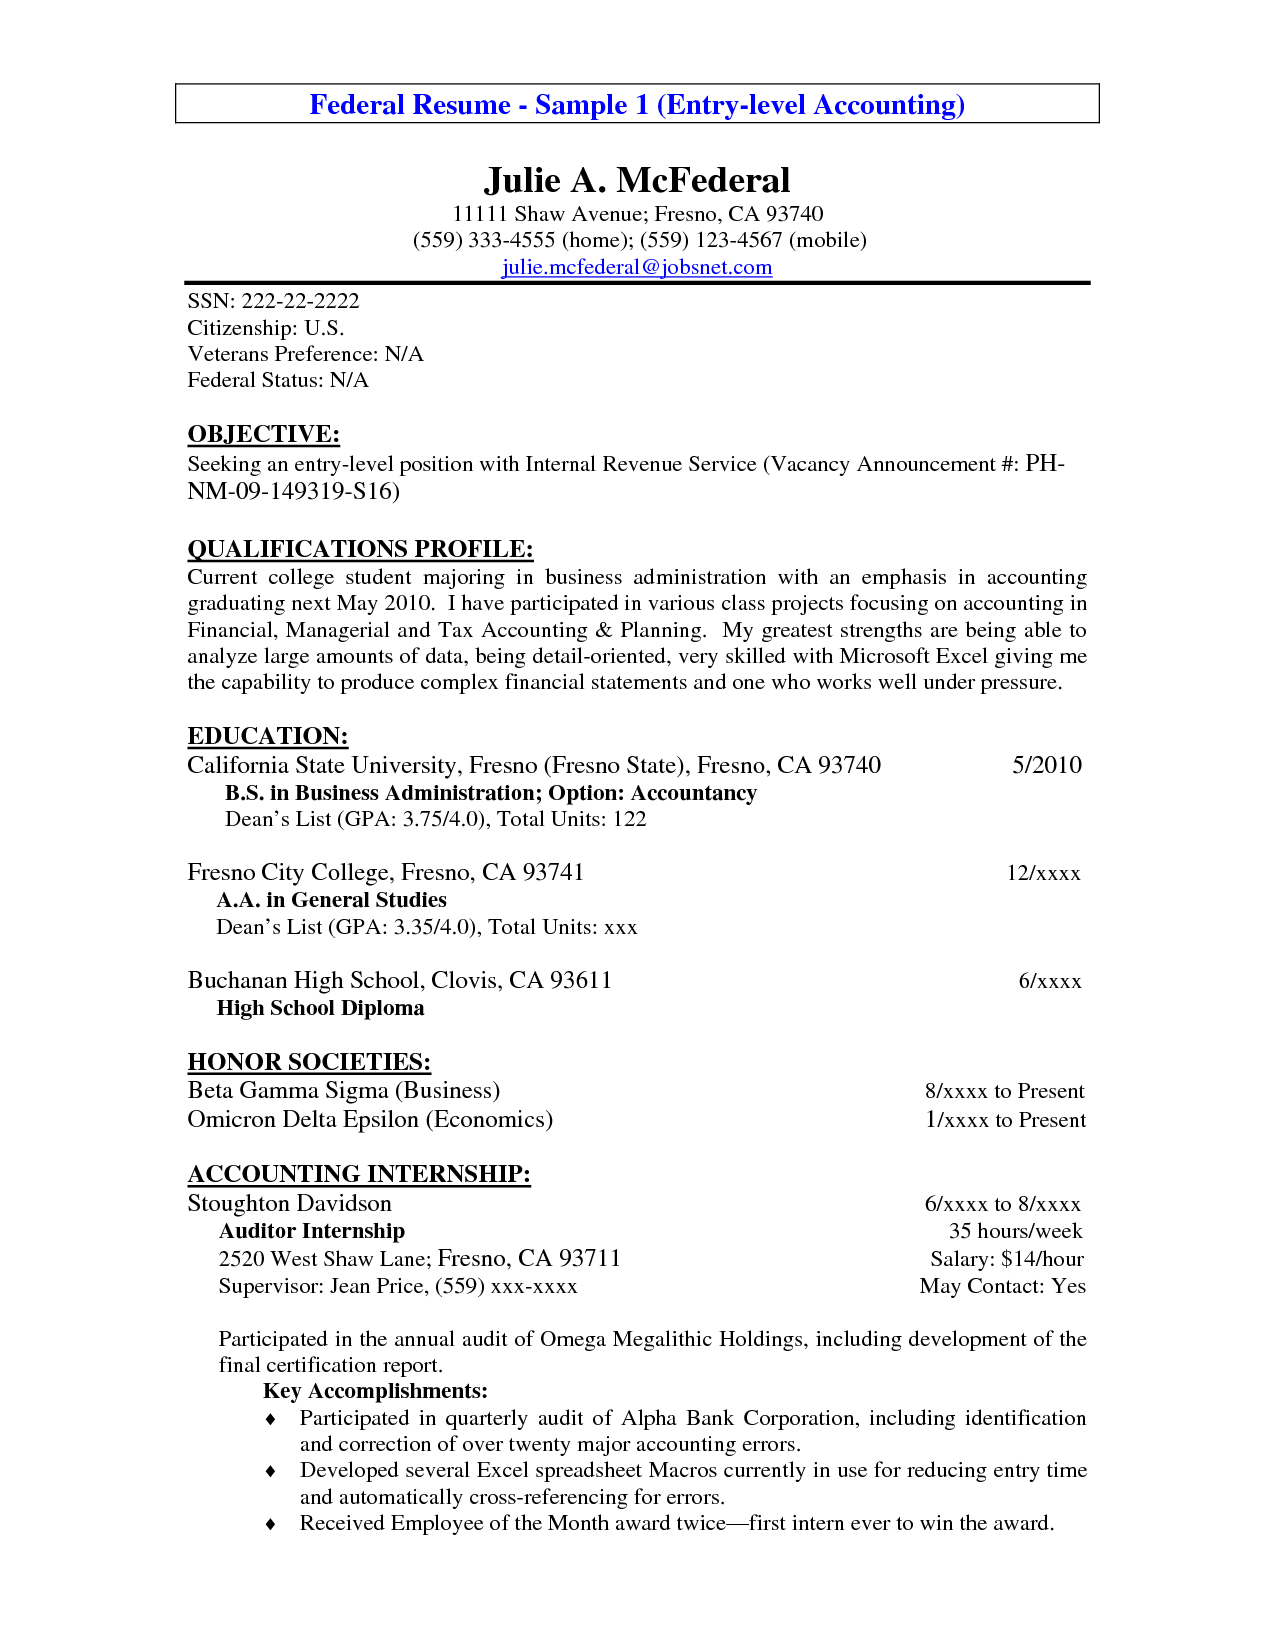 Accounting Internship Resume Objective Amazing Ann Debusschere A_Debusschere On Pinterest